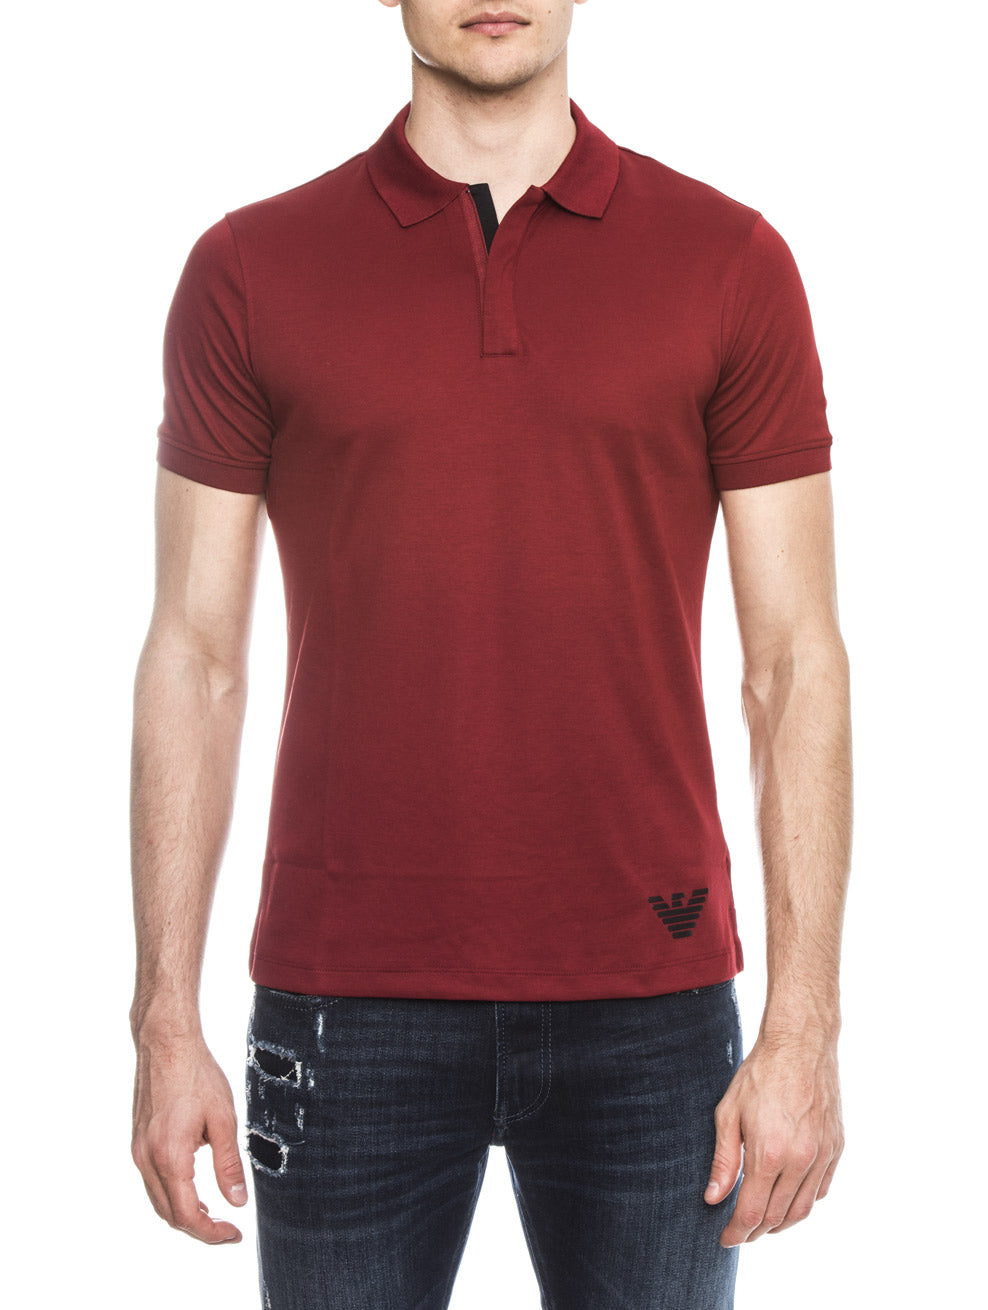 MAN JERSEY POLO IN GRANADE RED